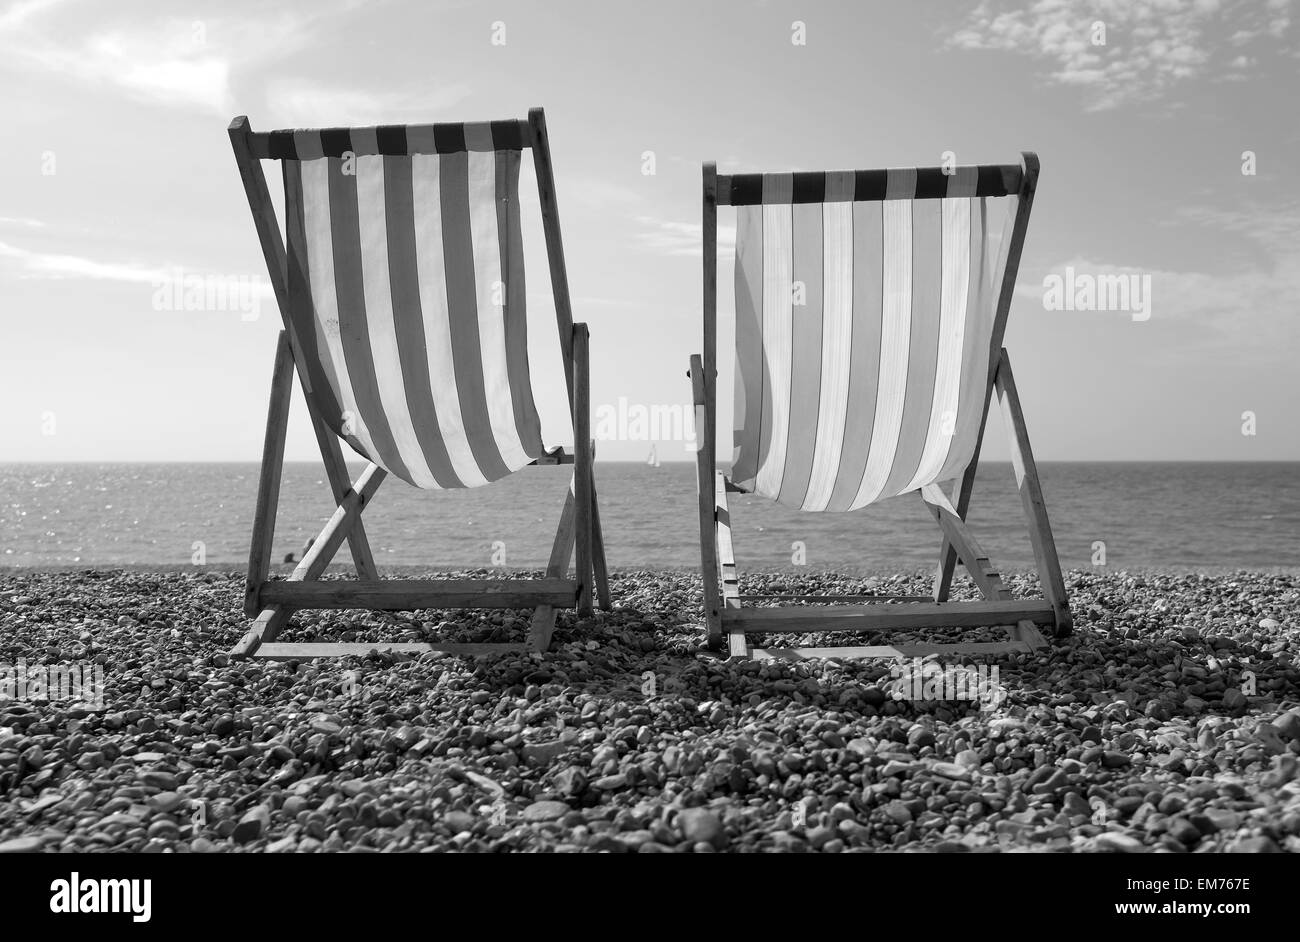 Brighton Beach, Deck chairs on the beach with single sailing boat in the background black and white - Stock Image